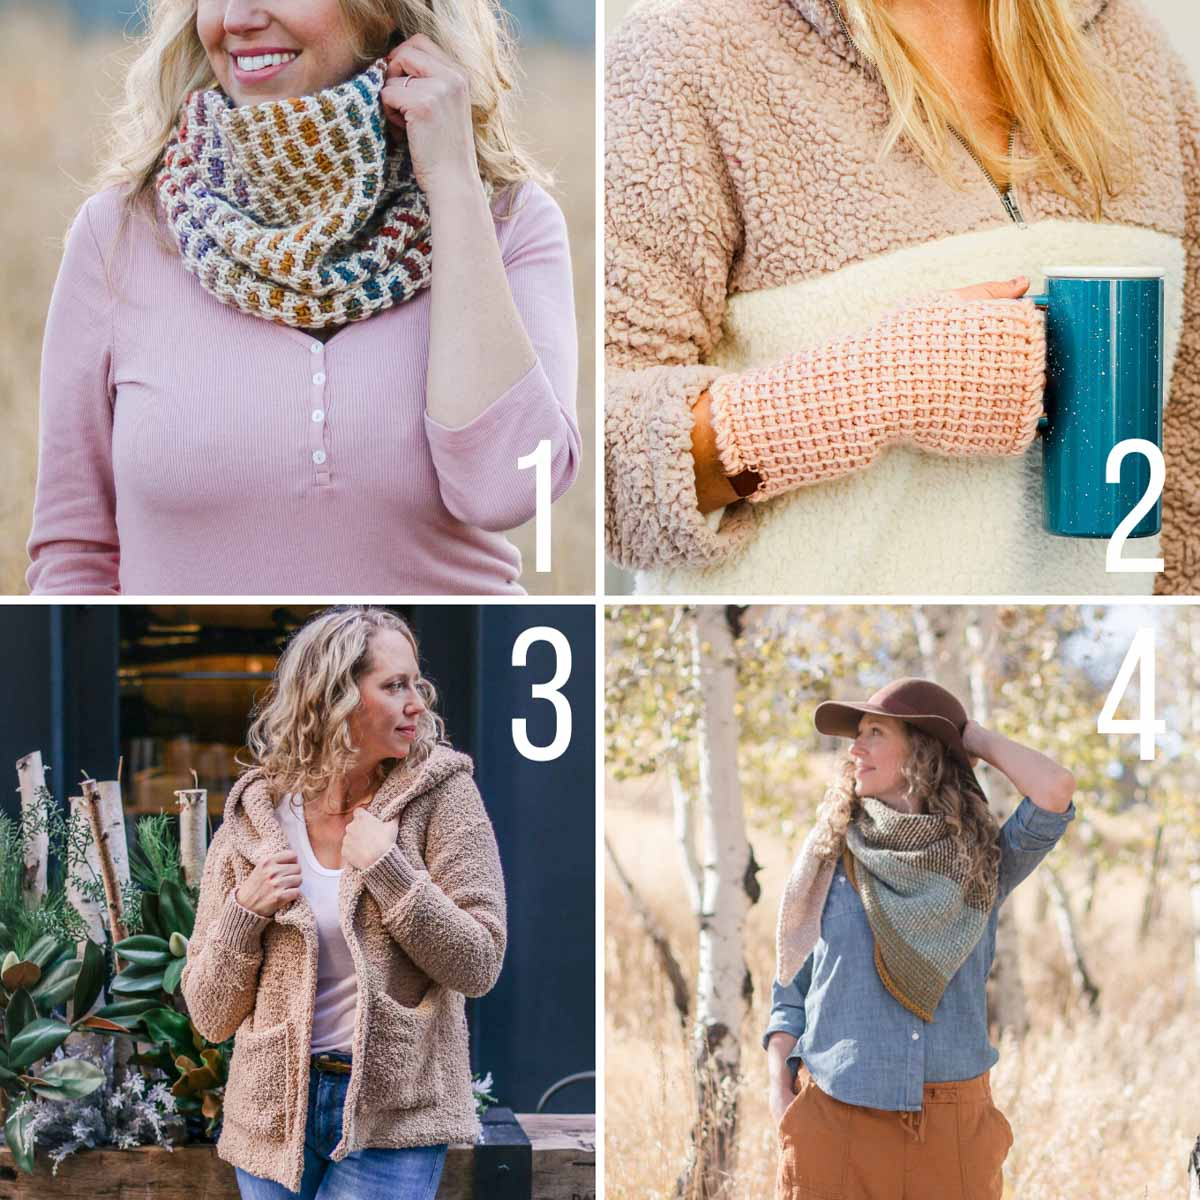 Grid of four modern Tunisian Crochet patterns - a Tunisian Crochet cowl, Tunisian Crochet mitts, a Tunisian Crochet sherpa sweater, and a reversible Tunisian Crochet wrap.